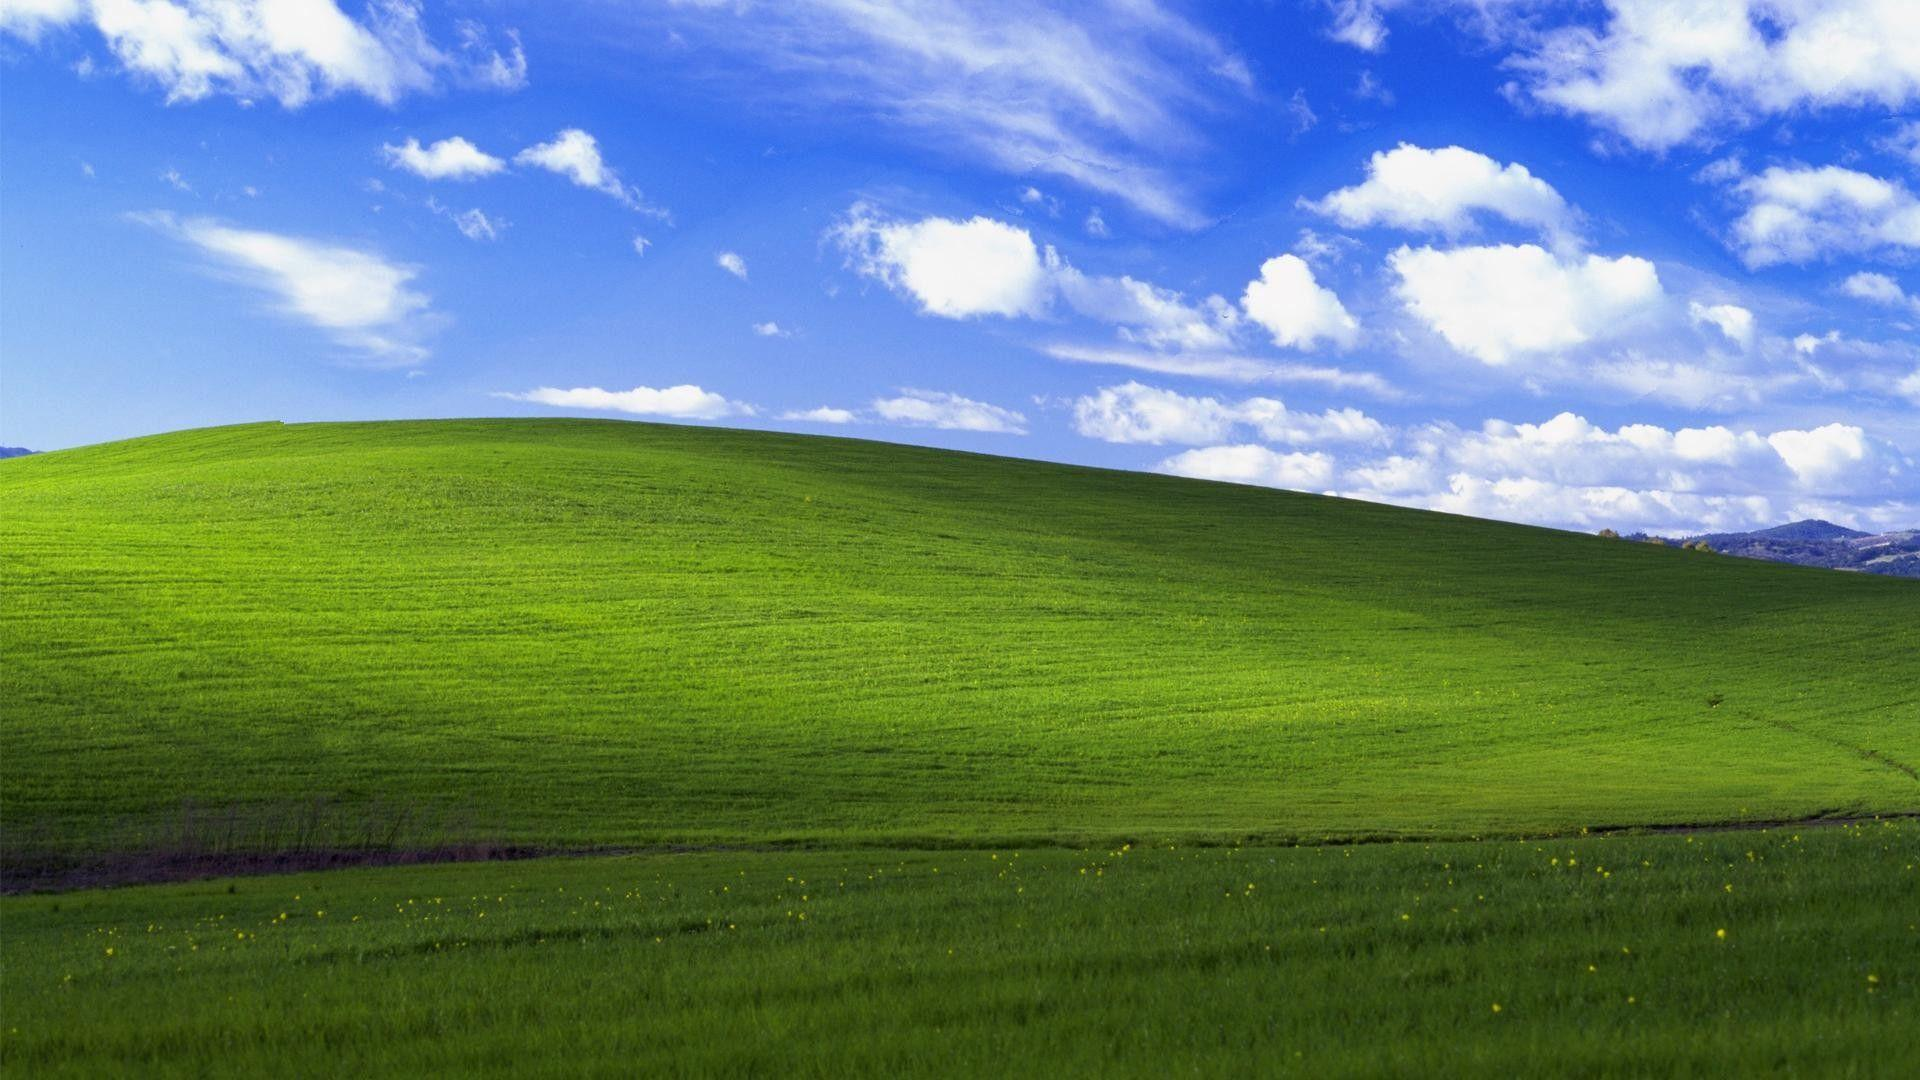 Windows XP Wallpapers HD 1920x1080 - Wallpaper Cave